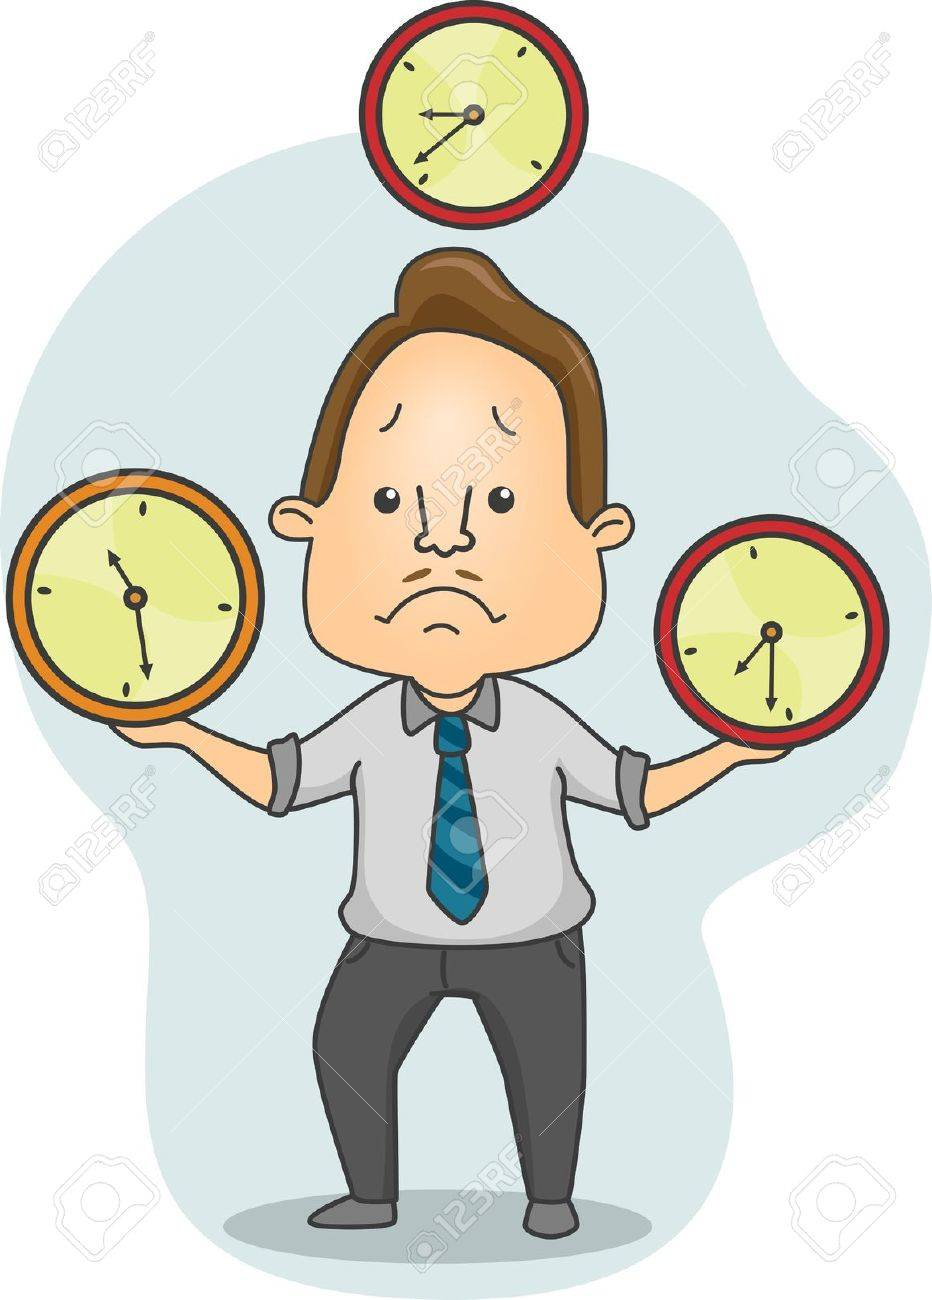 Illustration of a Man Juggling Time Stock Photo - 14039390